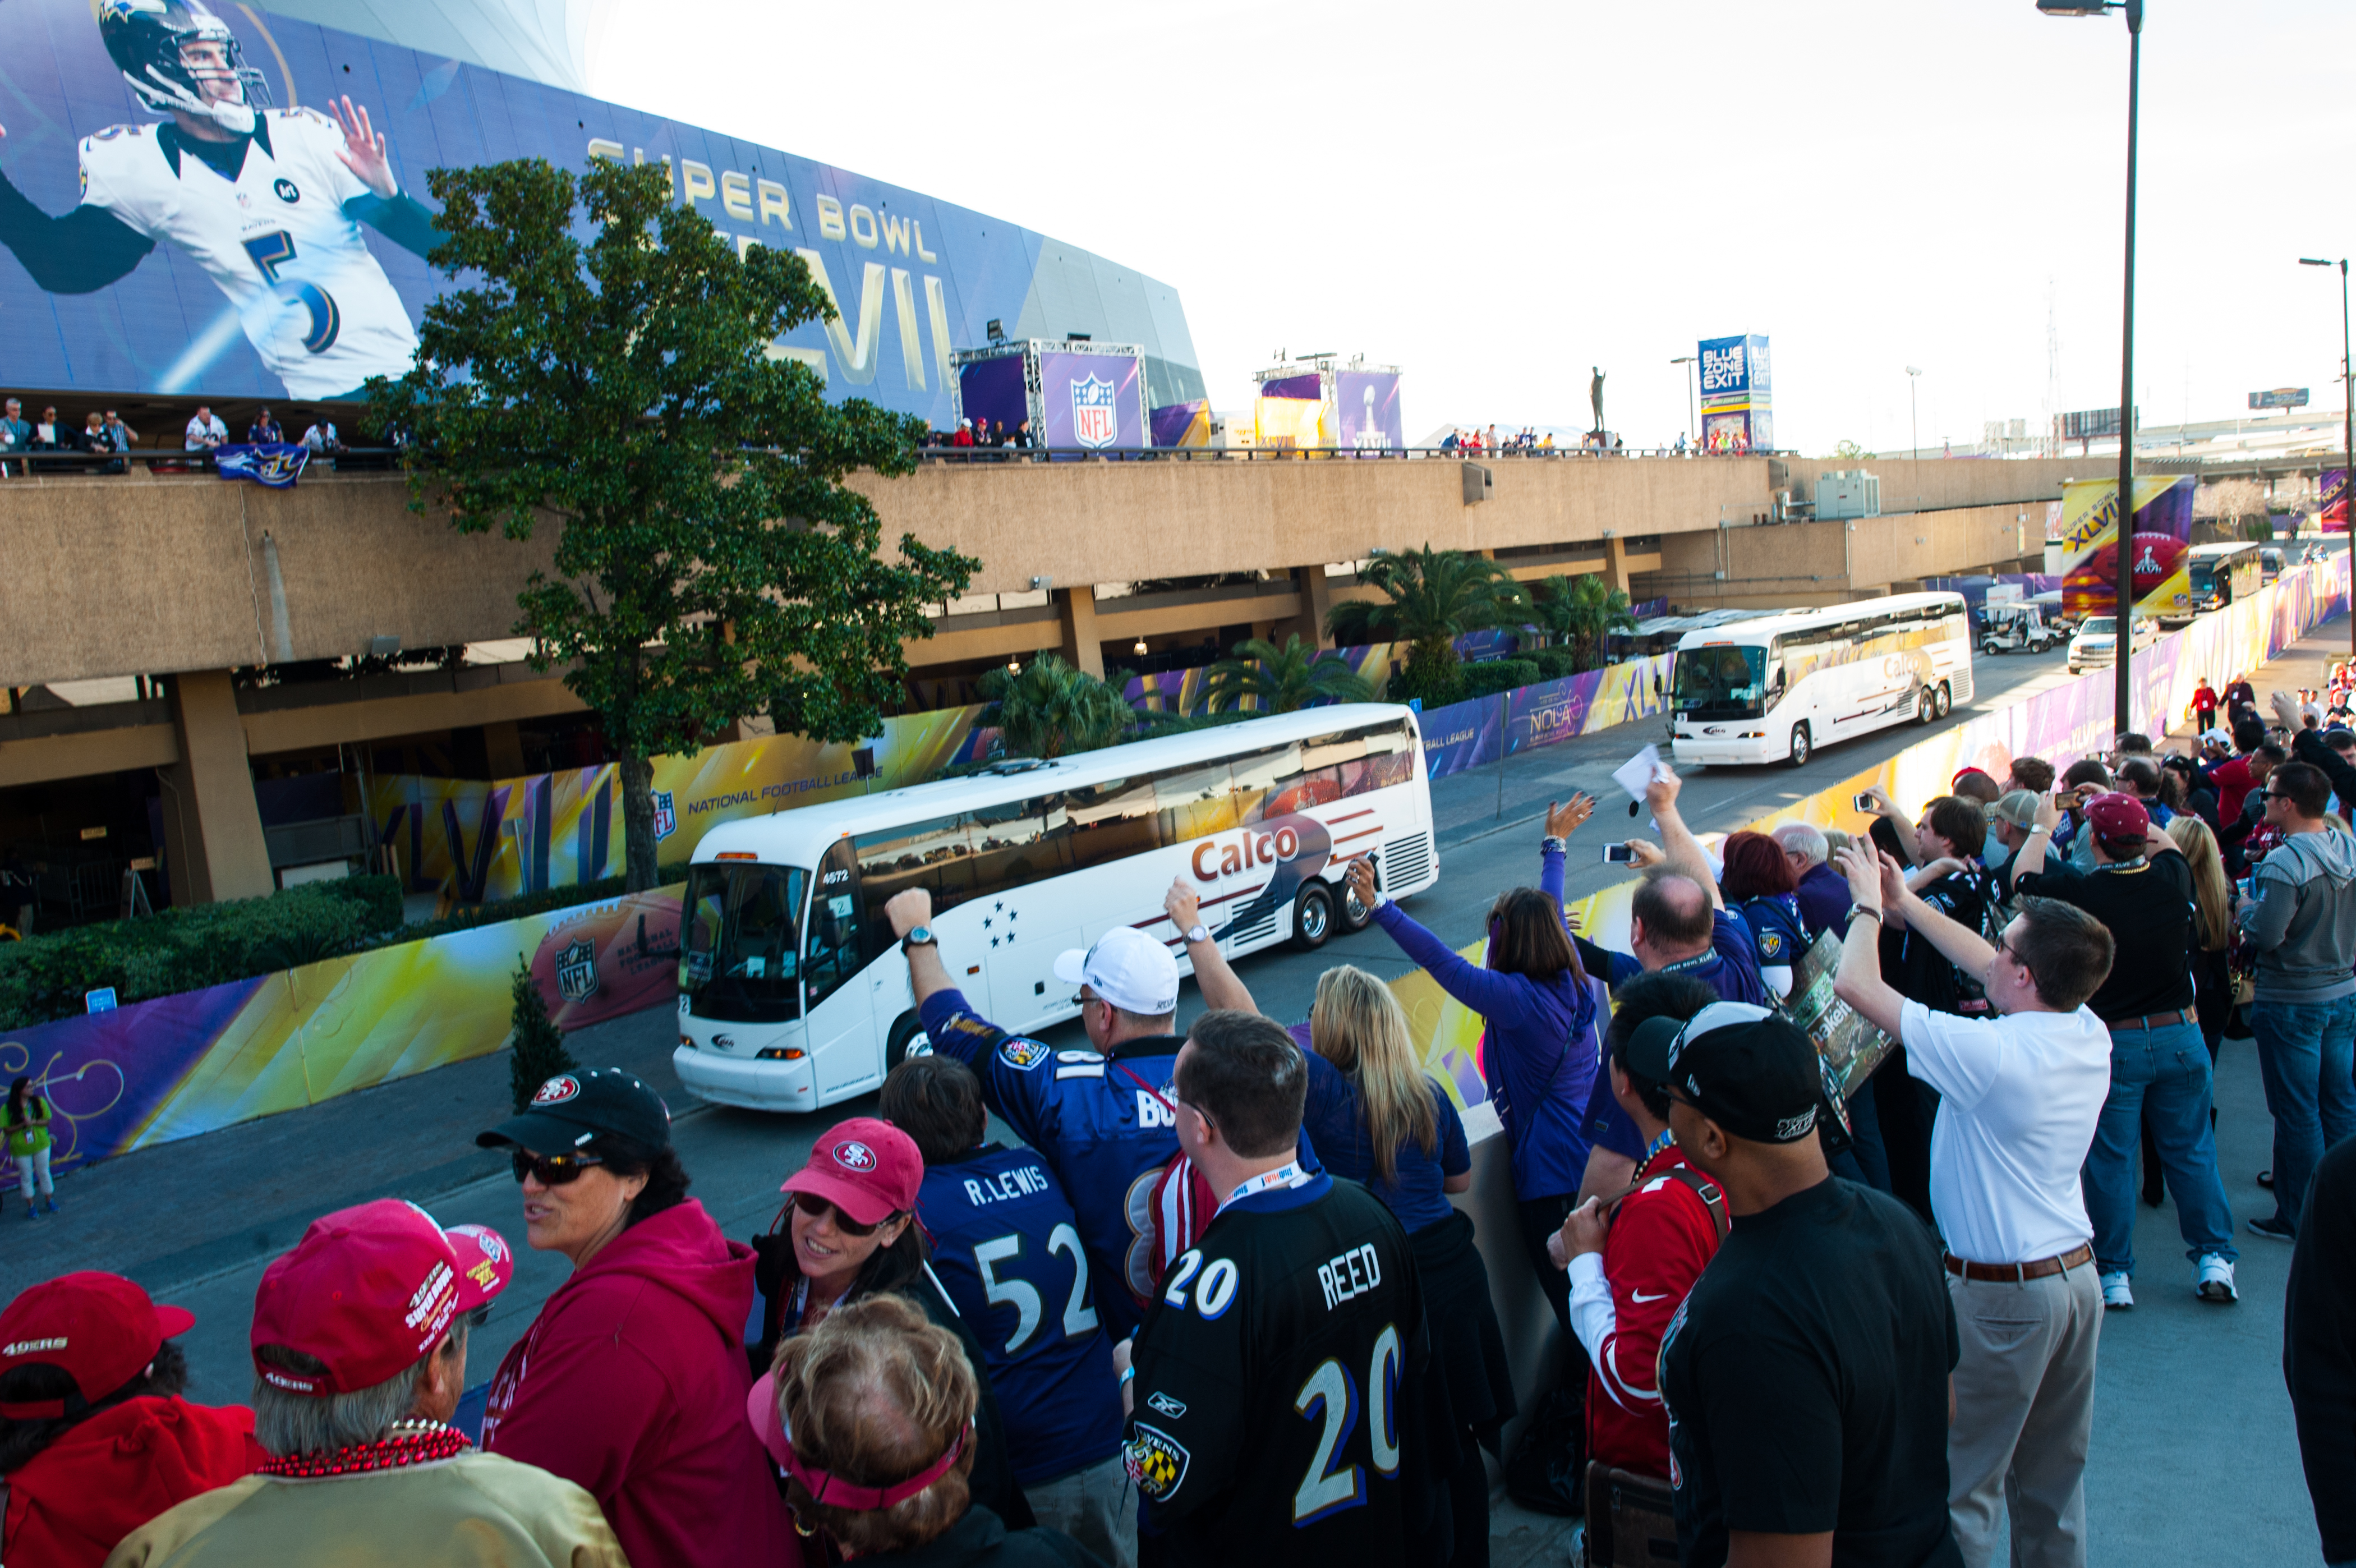 Fans cheer the buses with the players as they pull up to the stadium before Super Bowl XLVII between the Baltimore Ravens and the San Francisco 49ers in New Orleans.